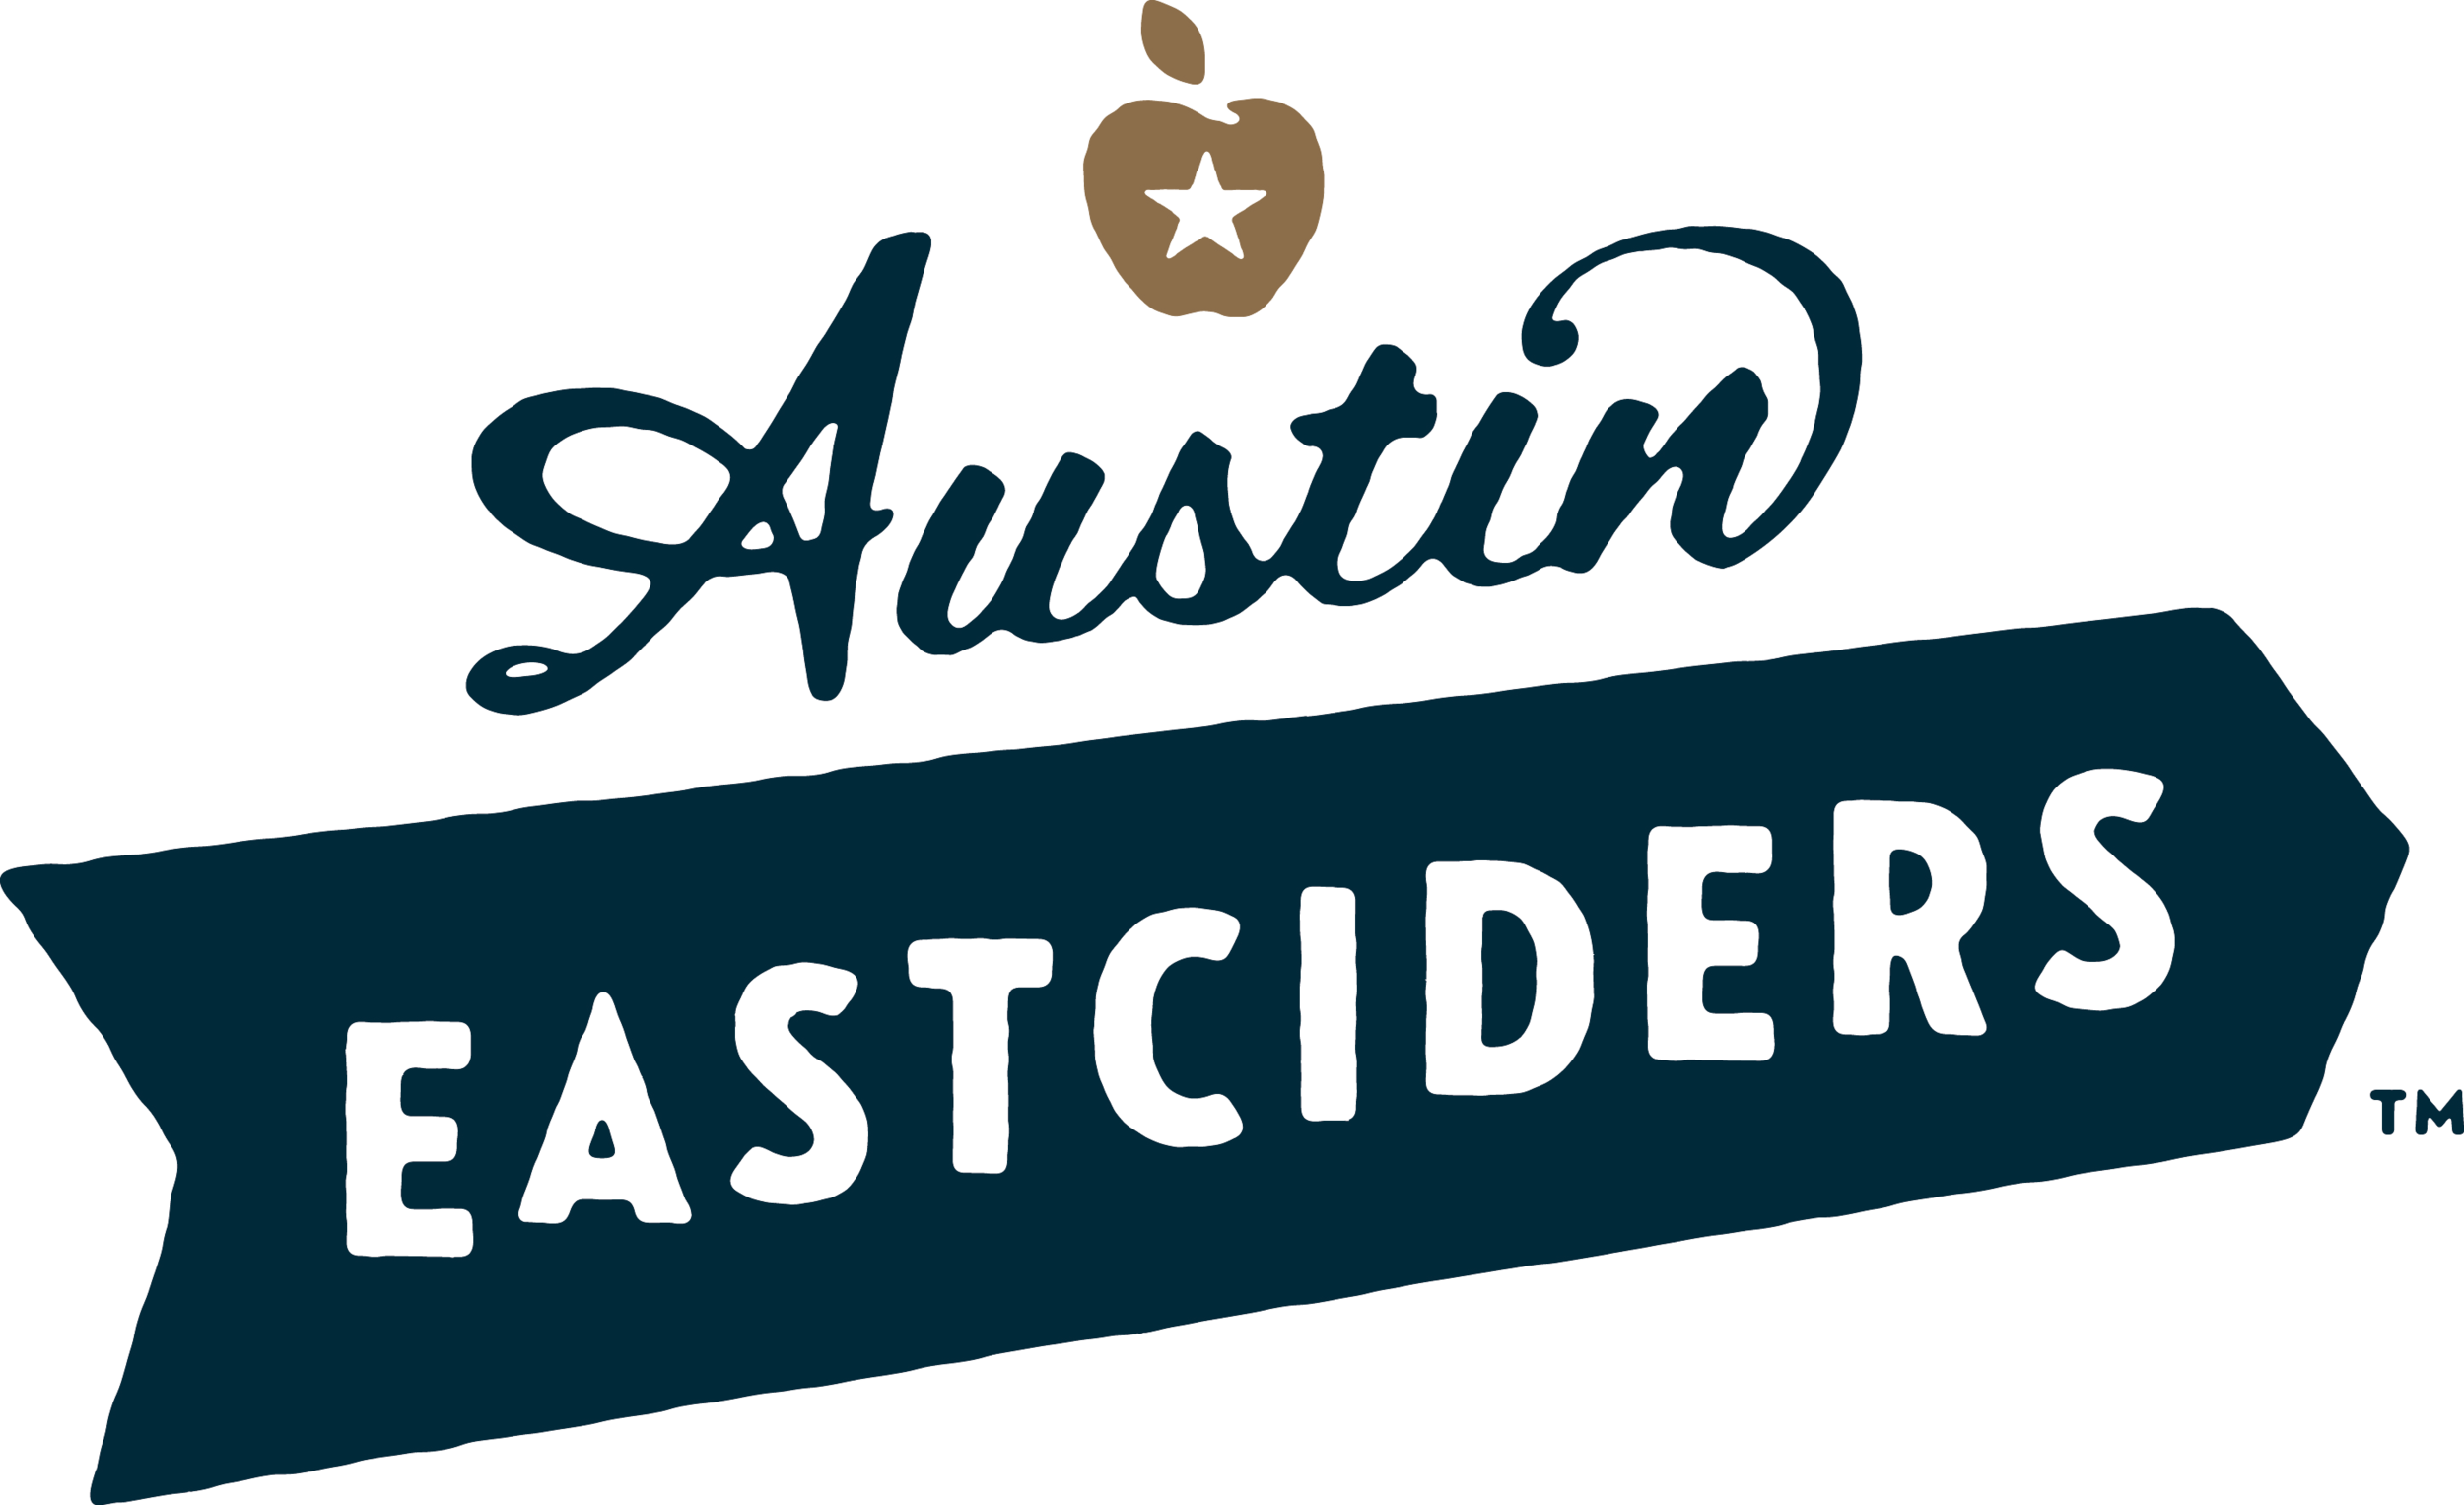 Austin-Eastciders.png